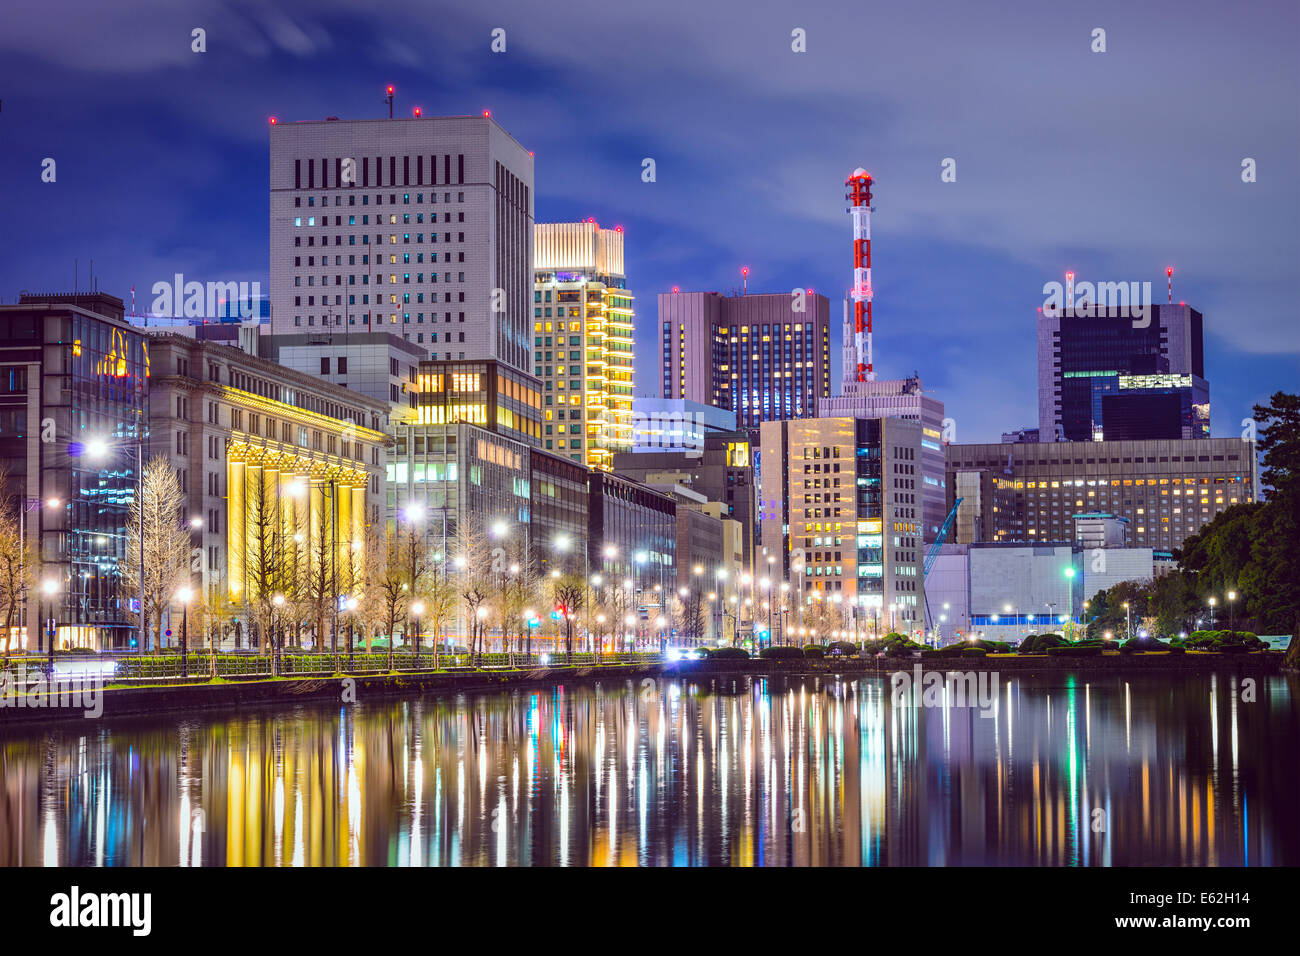 Tokyo, Japan cityscape at Marunouchi district. - Stock Image